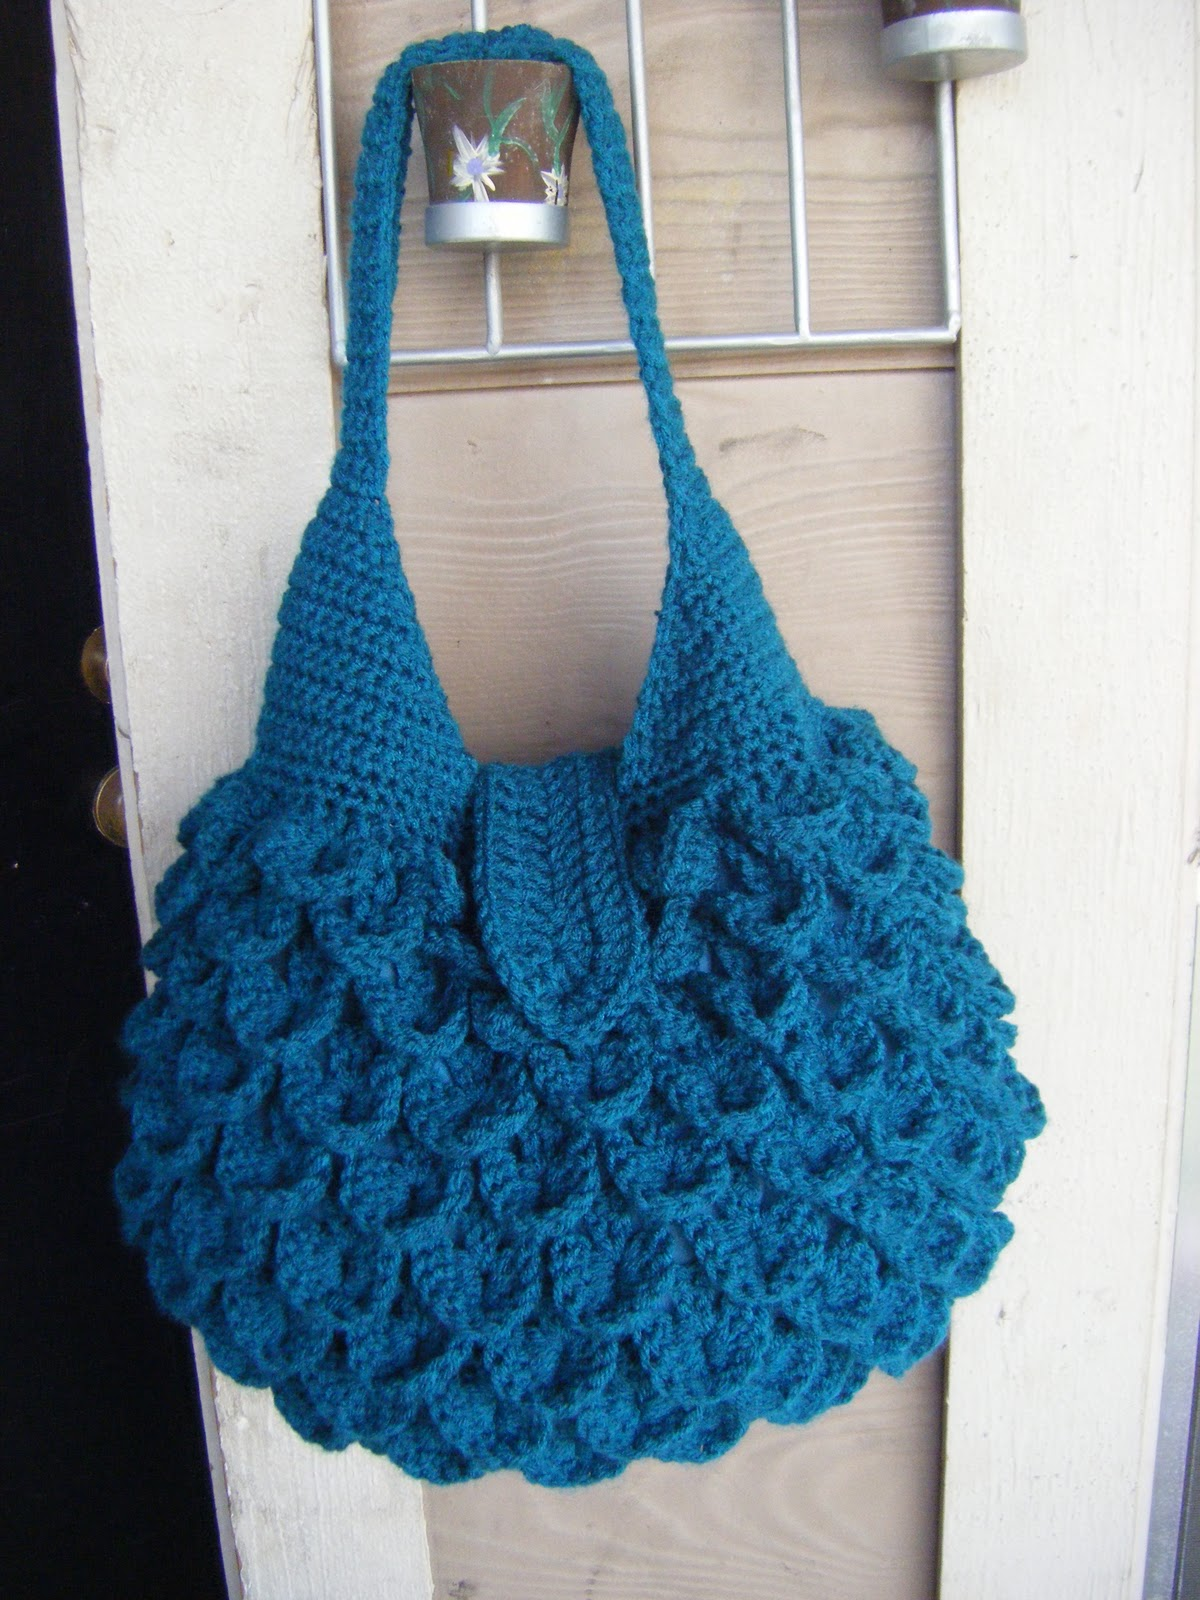 FREE CROCHET BAG HOLDER PATTERN - Crochet and Knitting Patterns